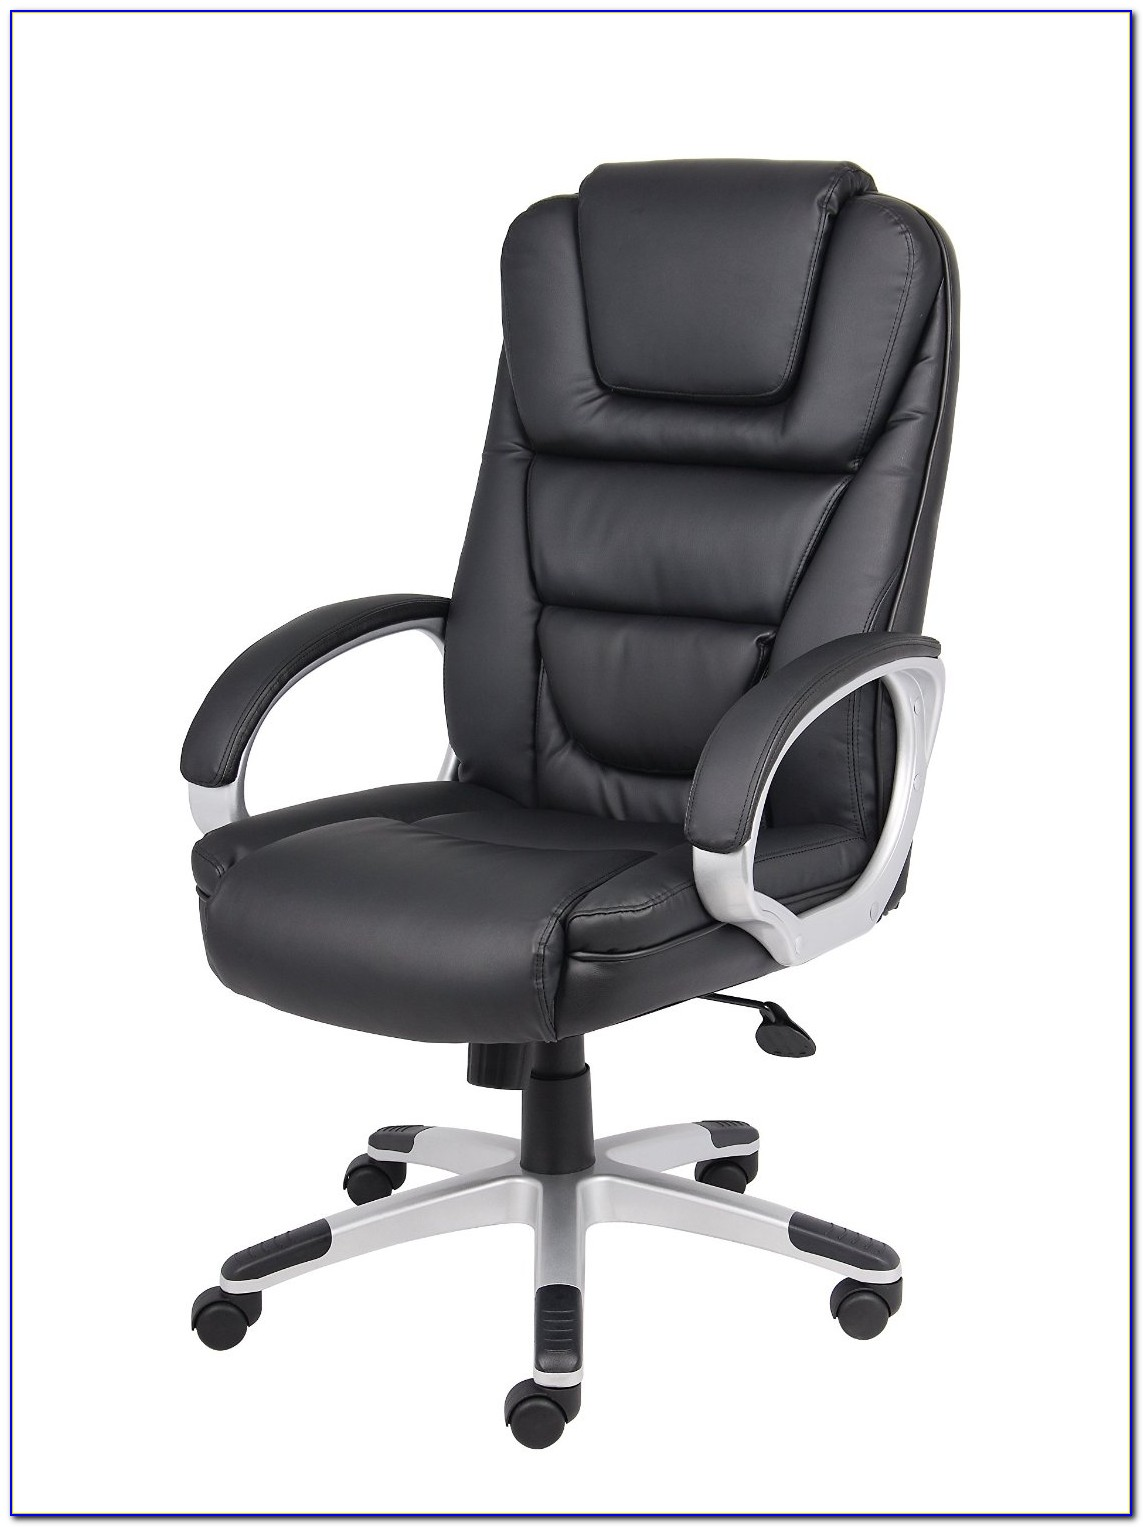 Orthopedic Chairs For Back Pain